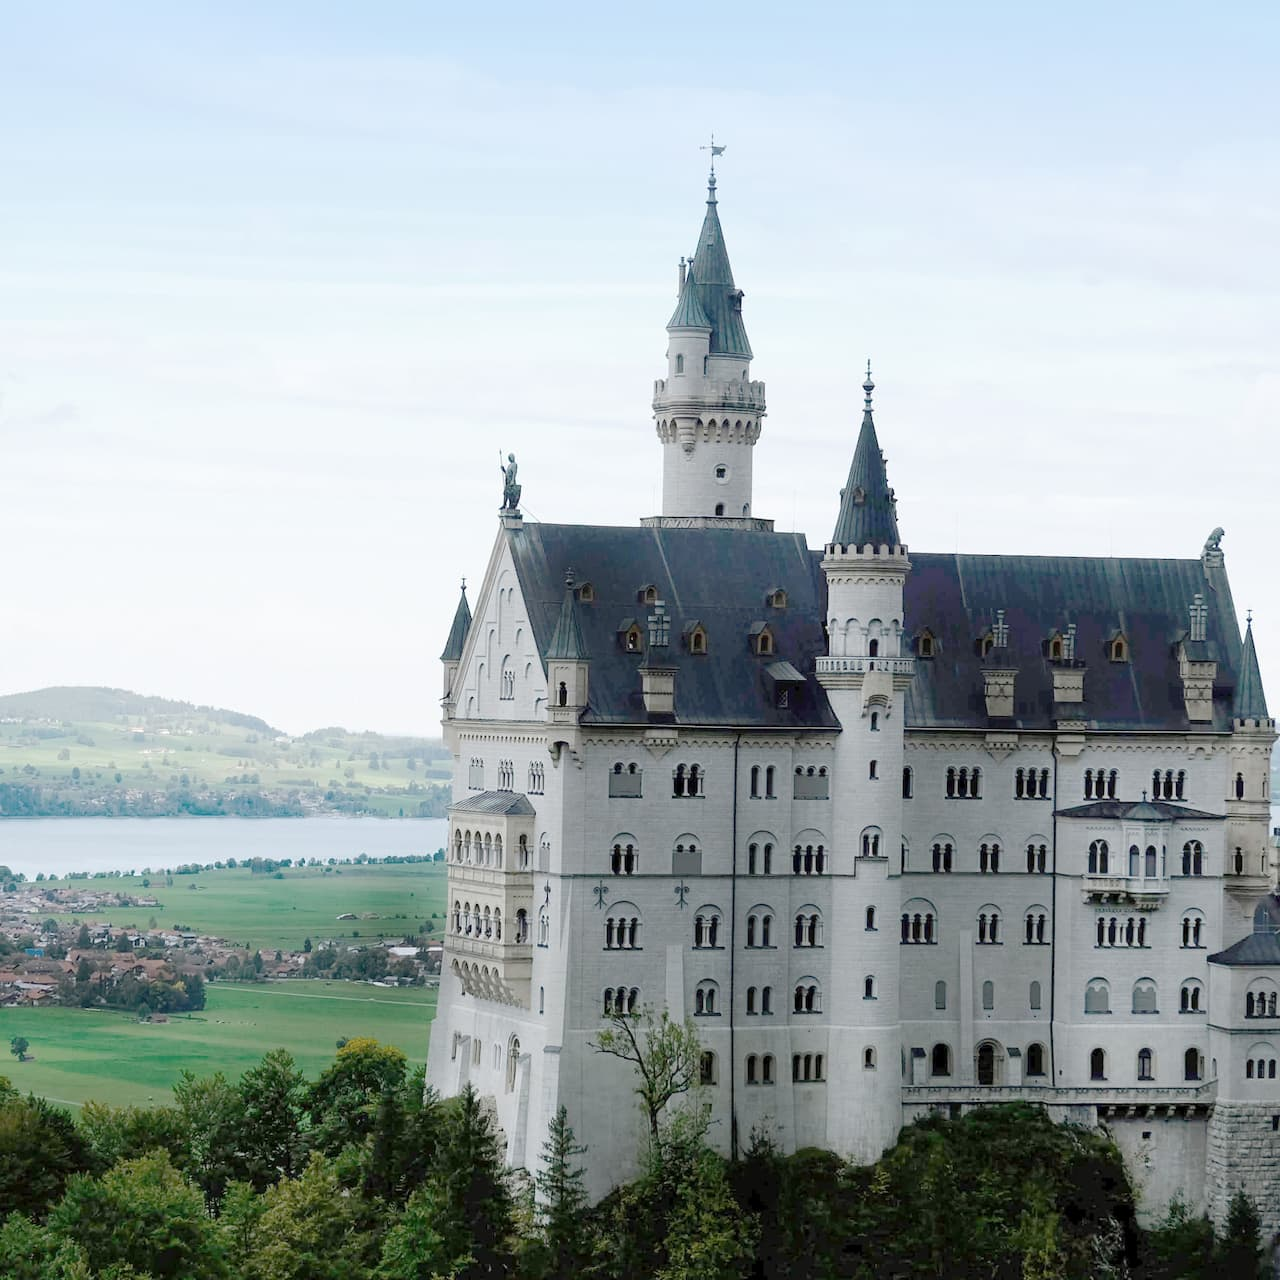 Neuschwanstein Castle stands on a hilltop above a town in the valley below on the banks of a river